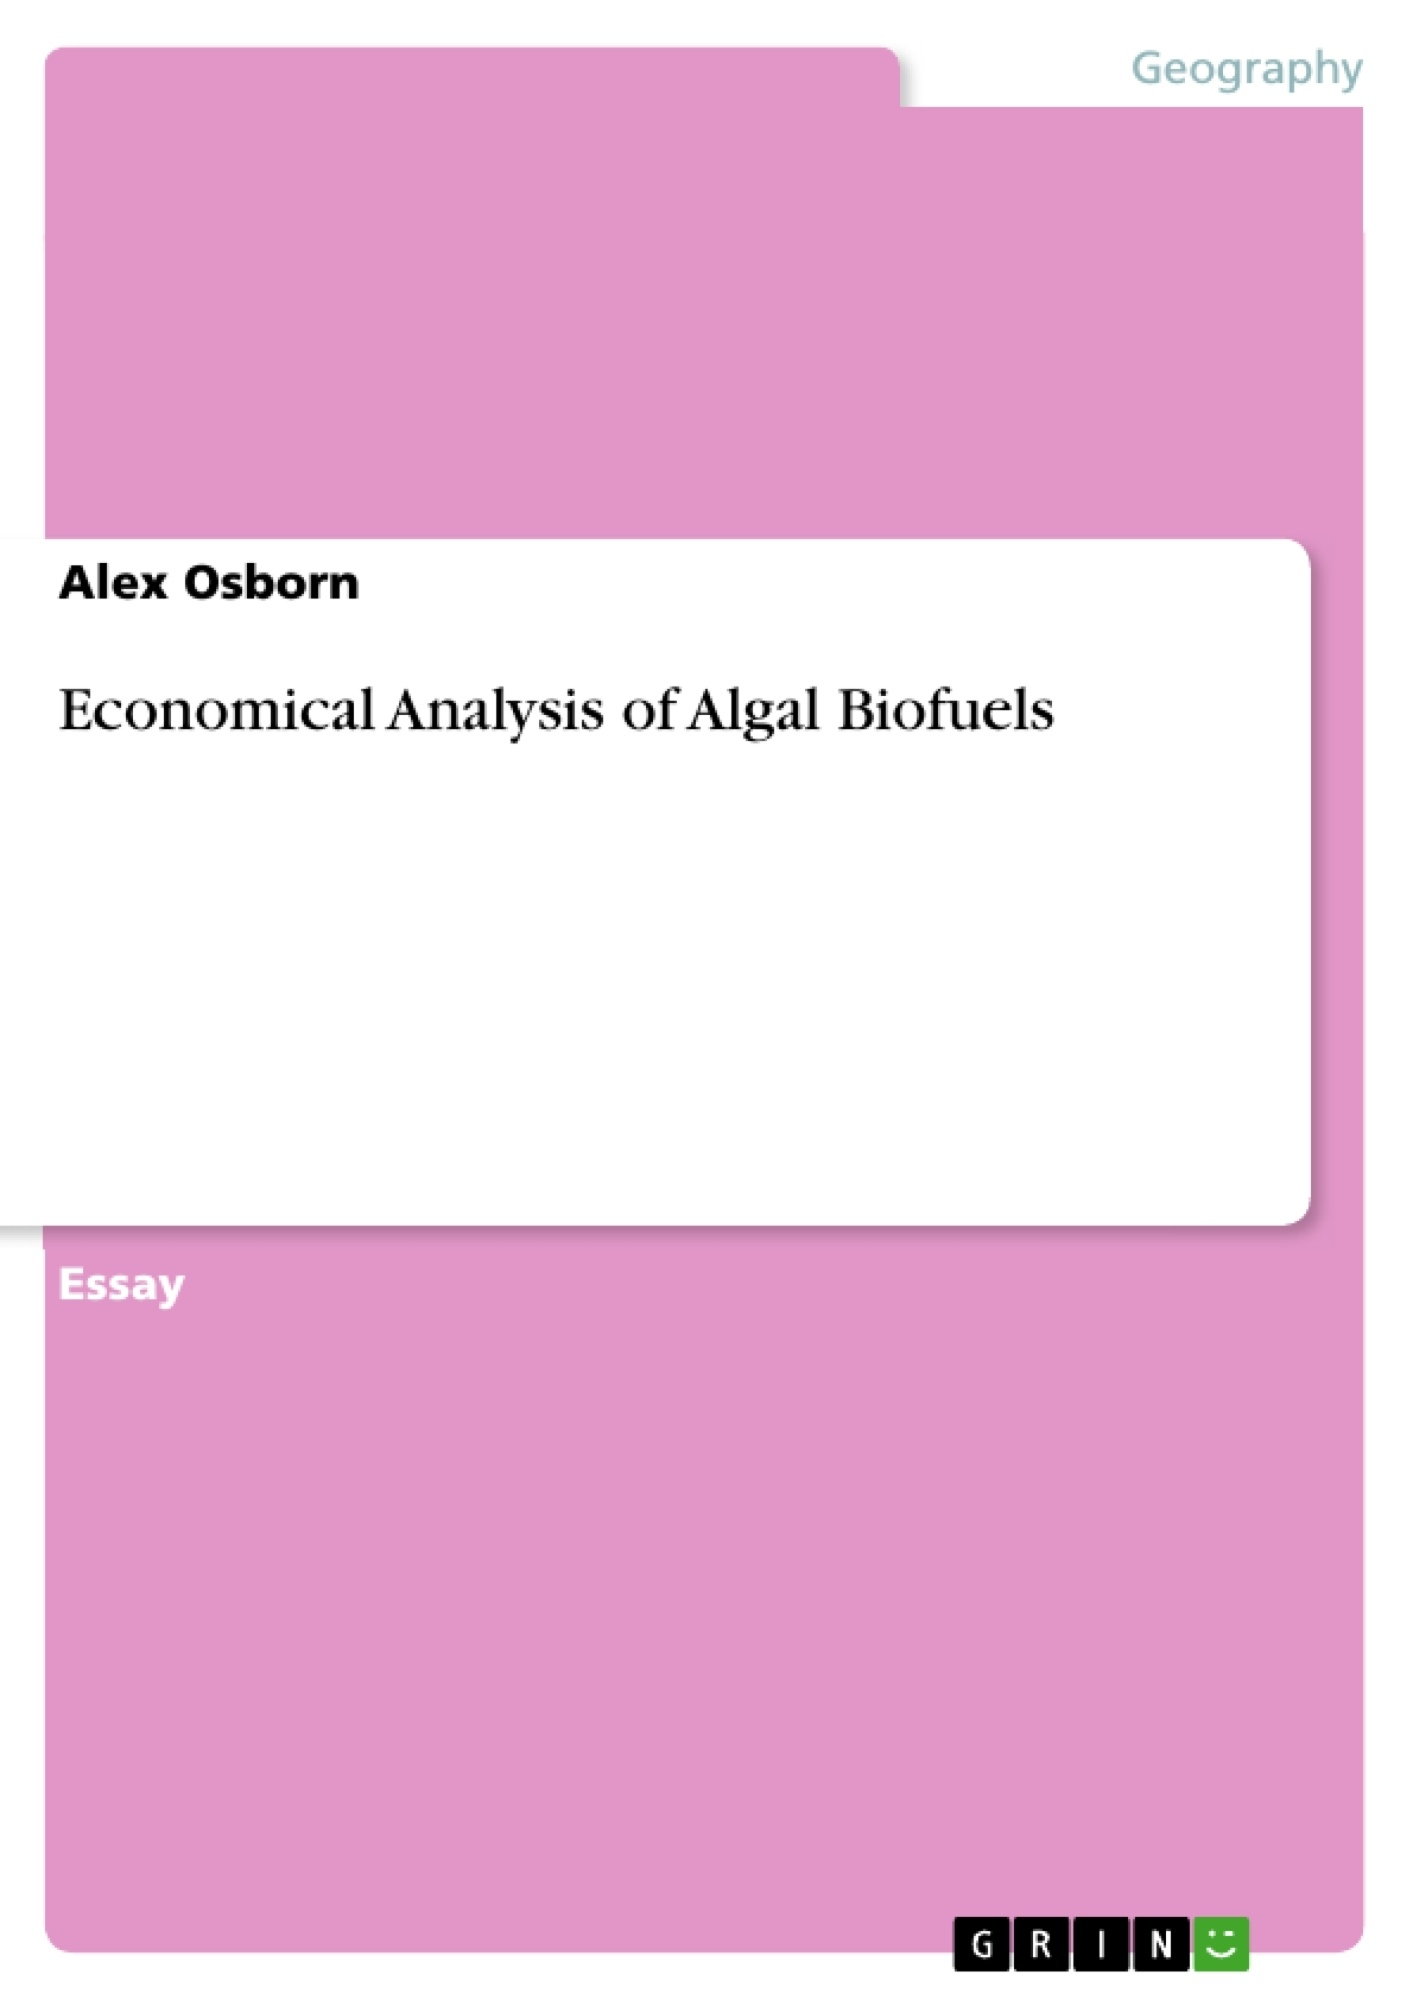 economical analysis of algal biofuels publish your master s  upload your own papers earn money and win an iphone x